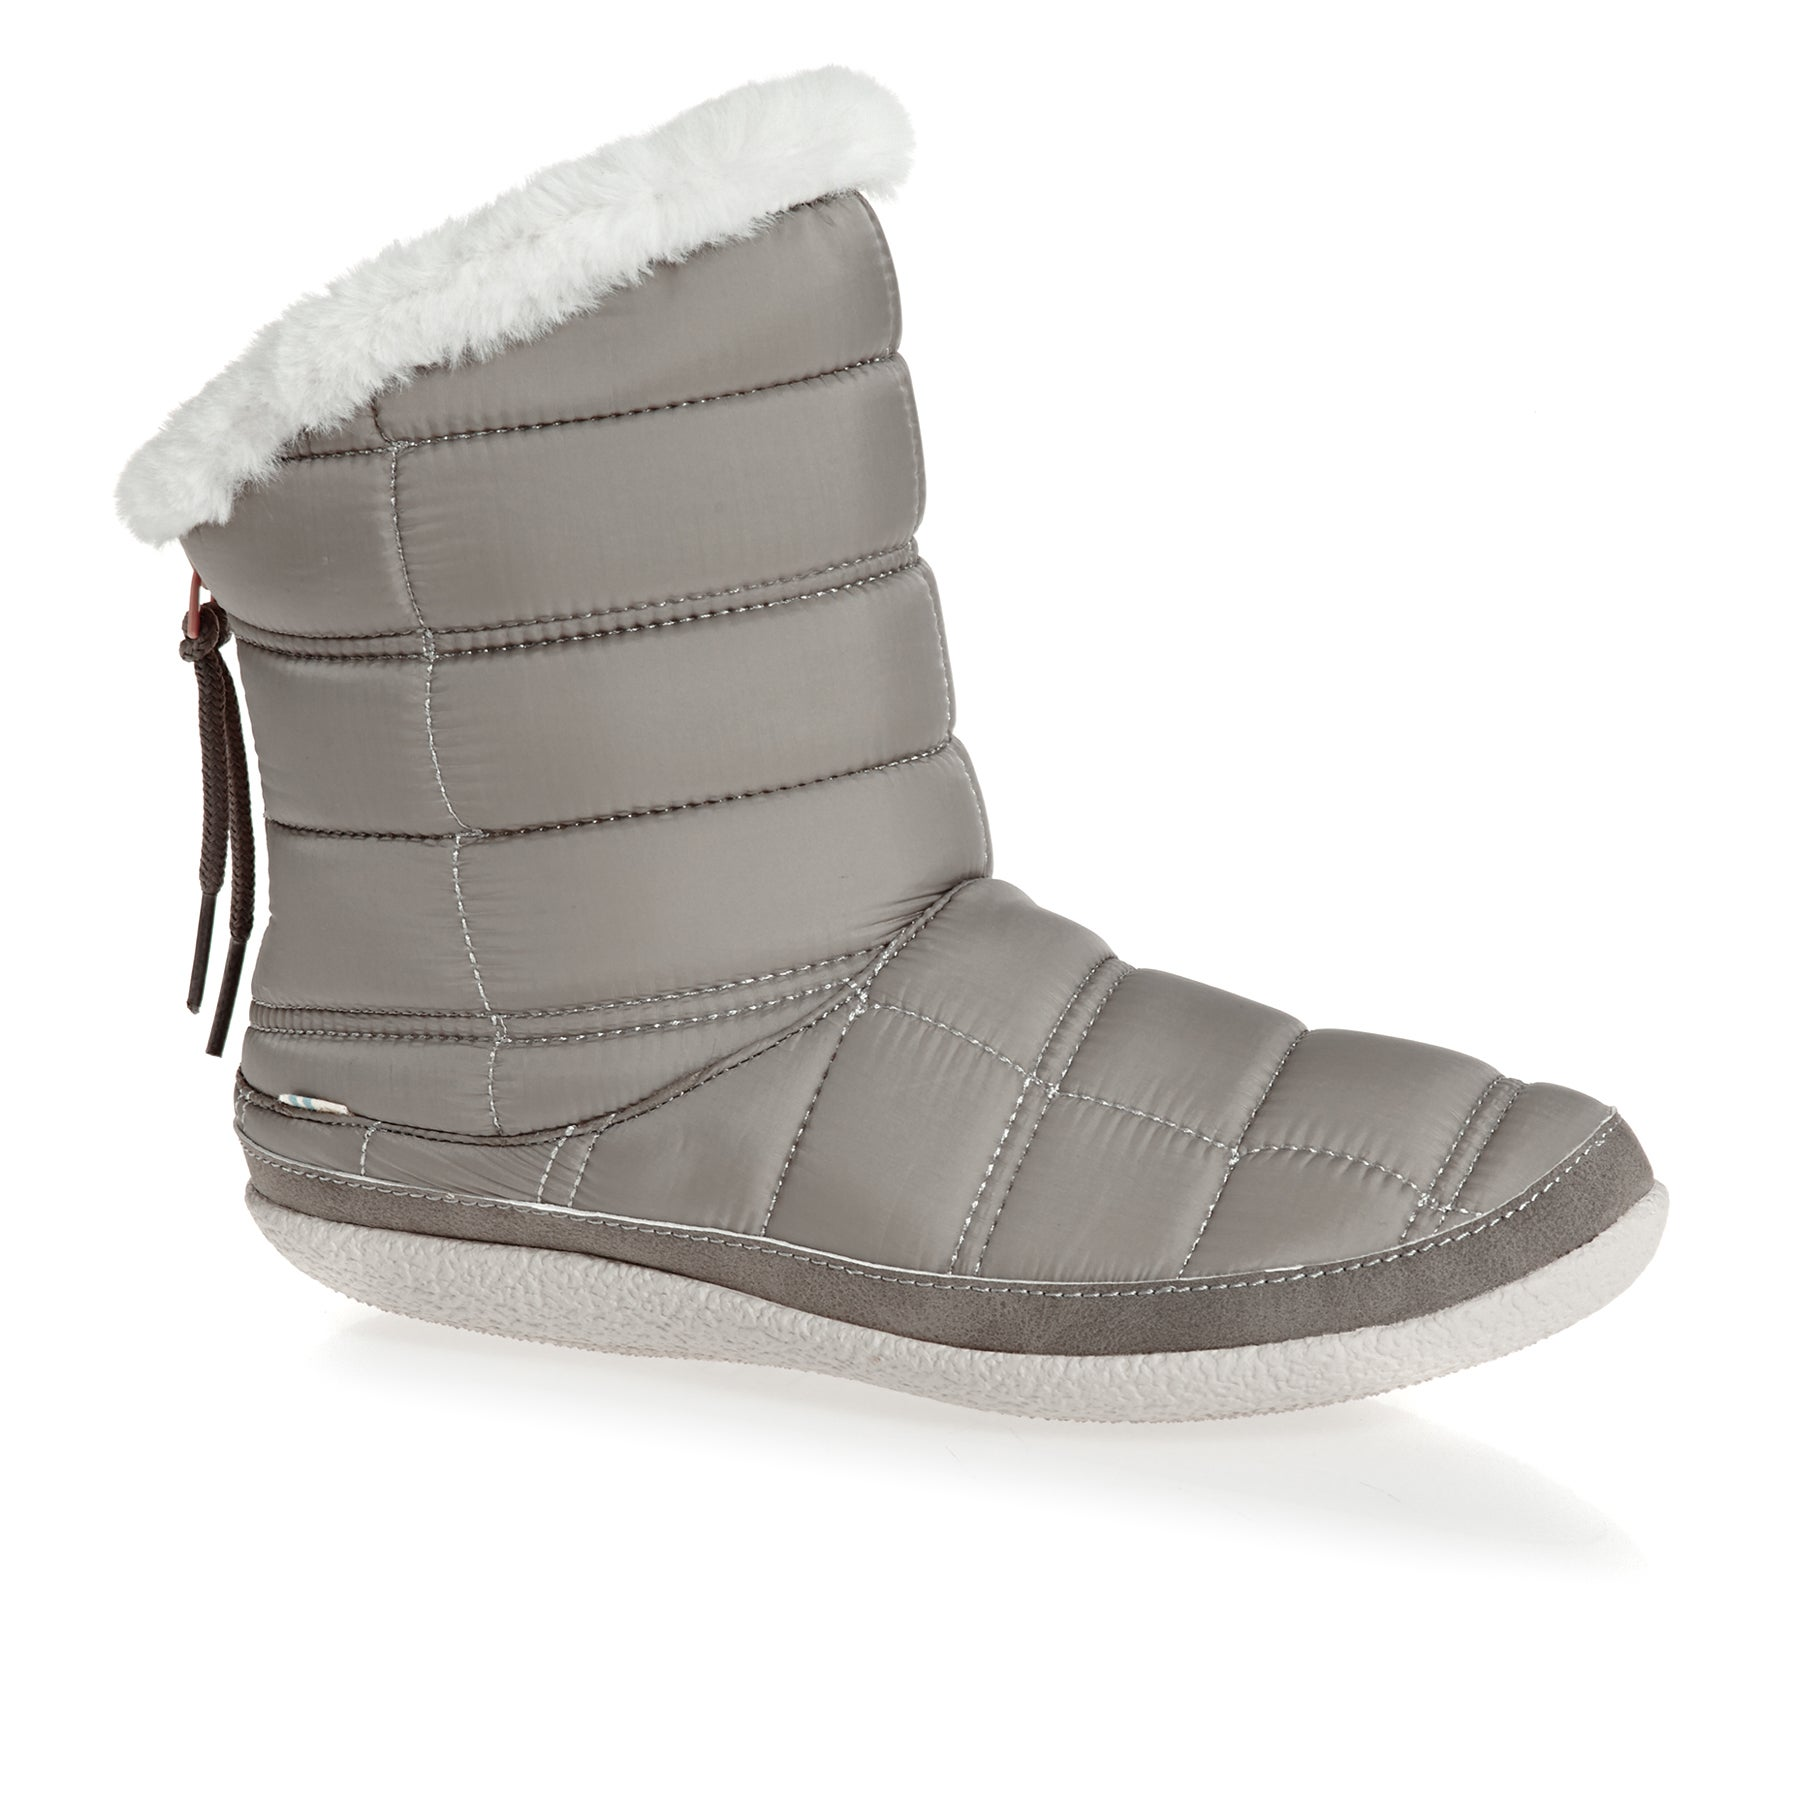 Toms Inez Stellar Quilted Womens Slippers - Cement Grey